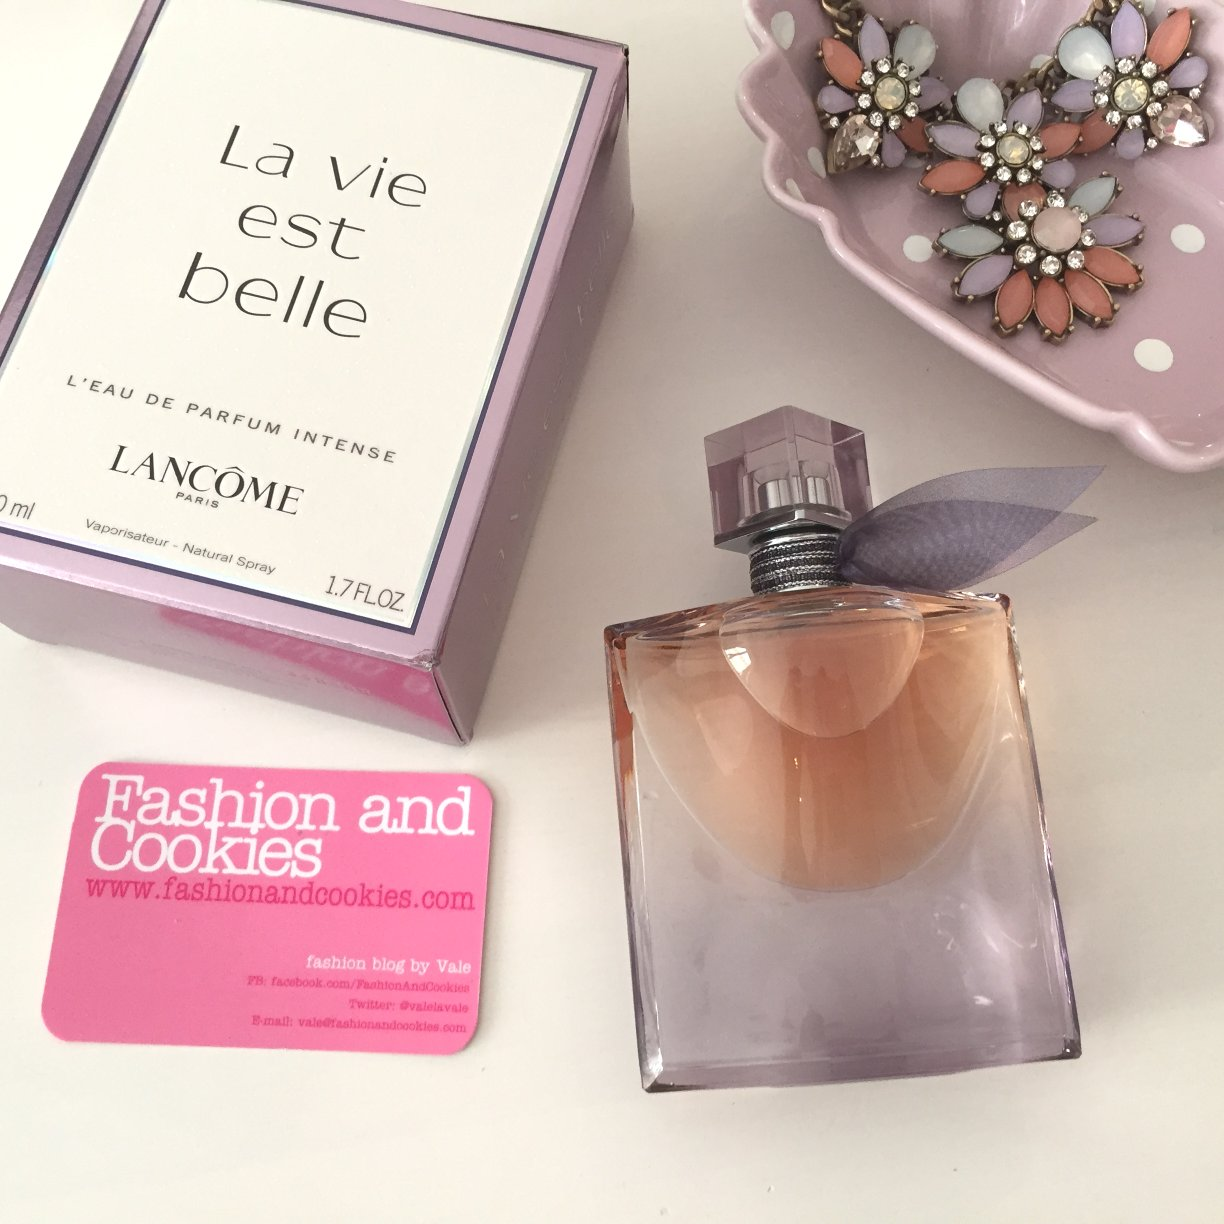 Lancôme La Vie Est Belle, L'Eau de Parfum Intense on Fashion and Cookies fashion and beauty blog